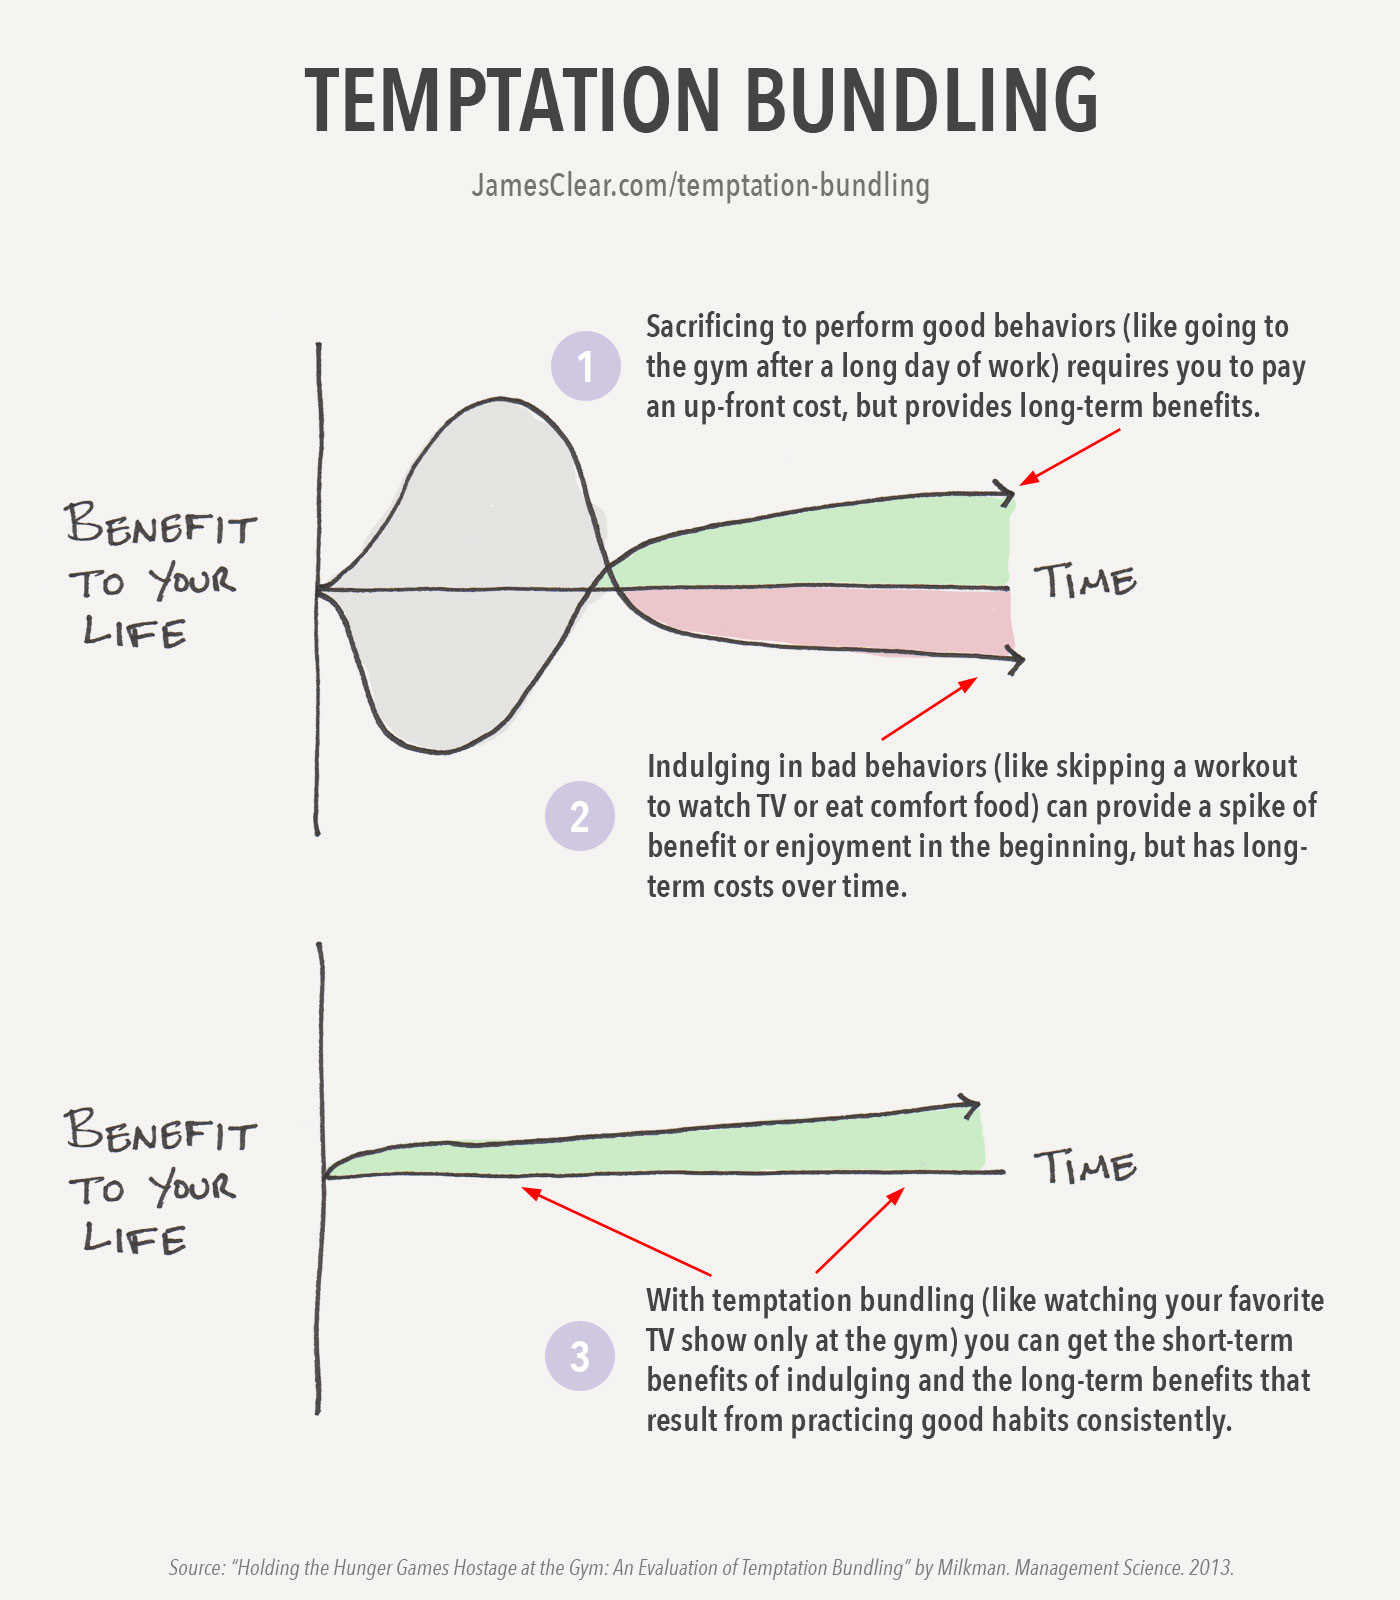 The Temptation Bundling concept by Katy Milkman